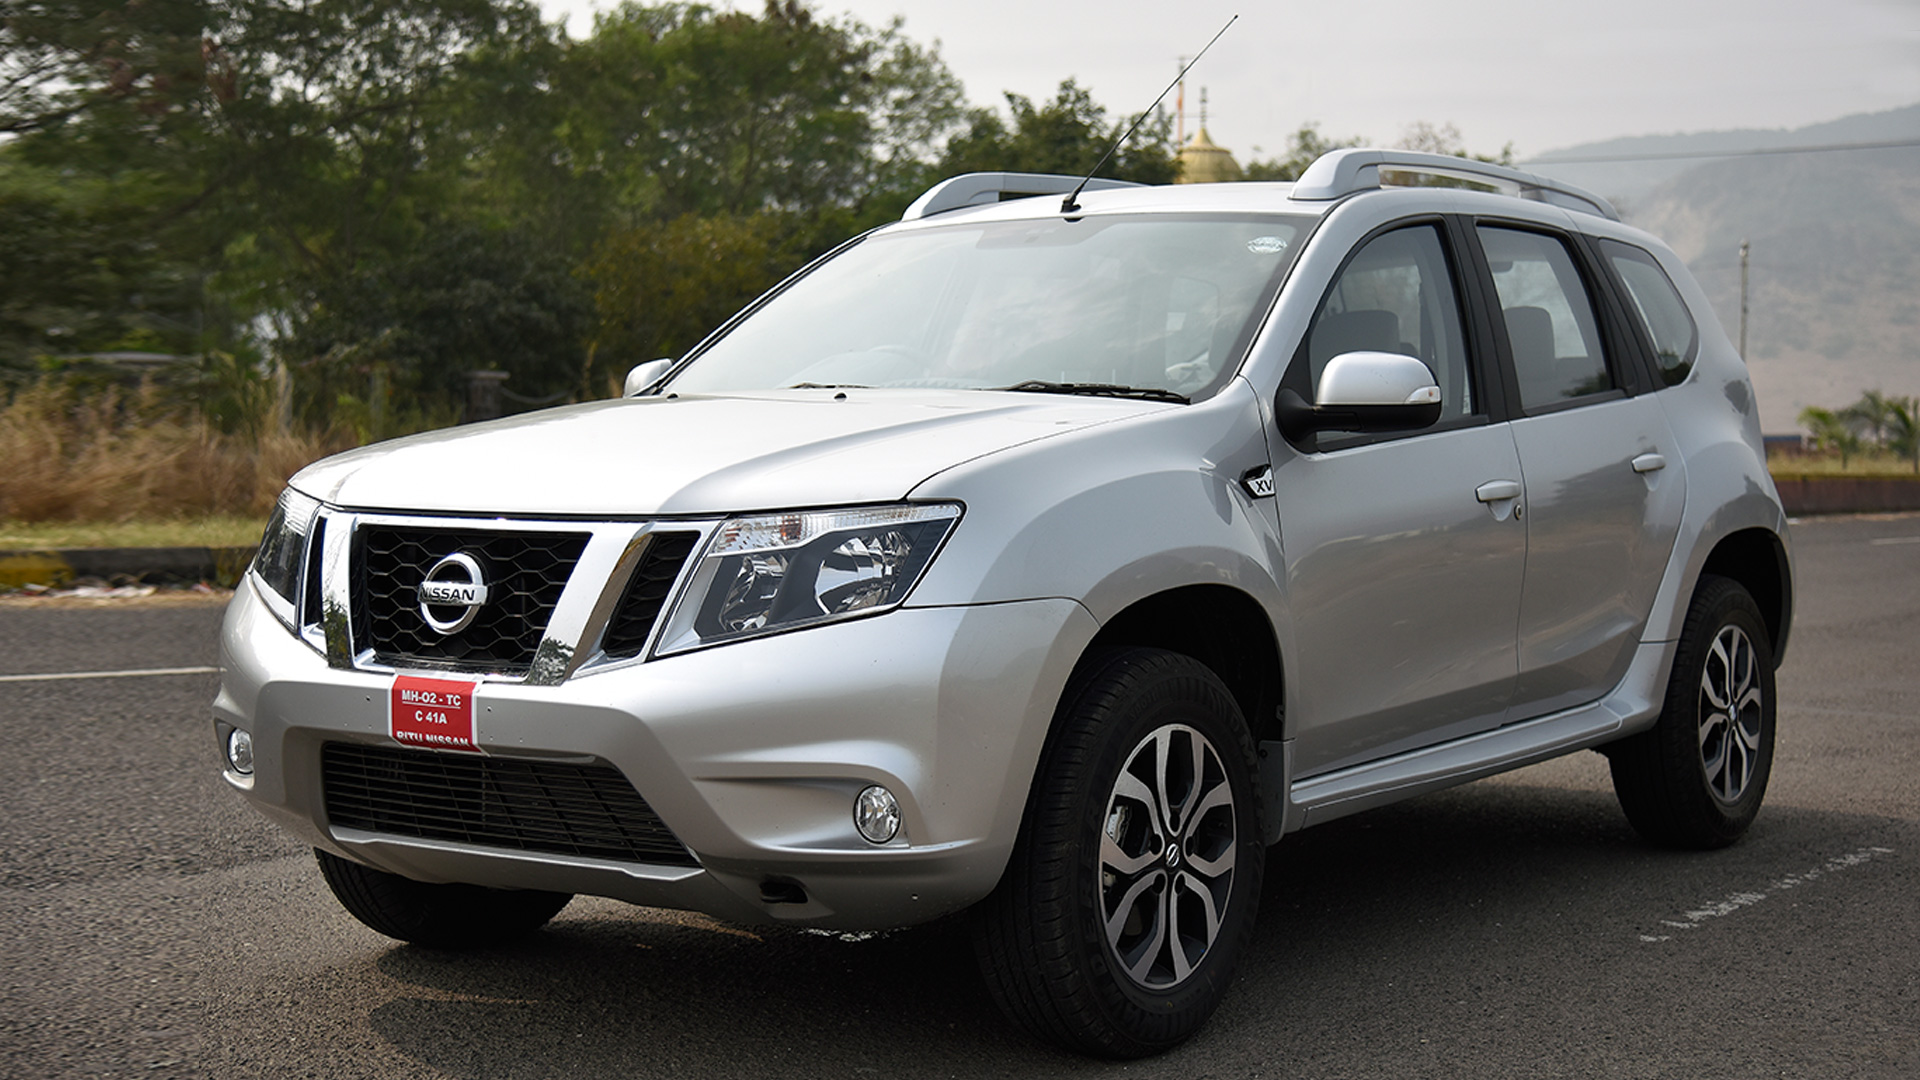 Nissan Terrano 2017 XV Premium AT dCi 110ps